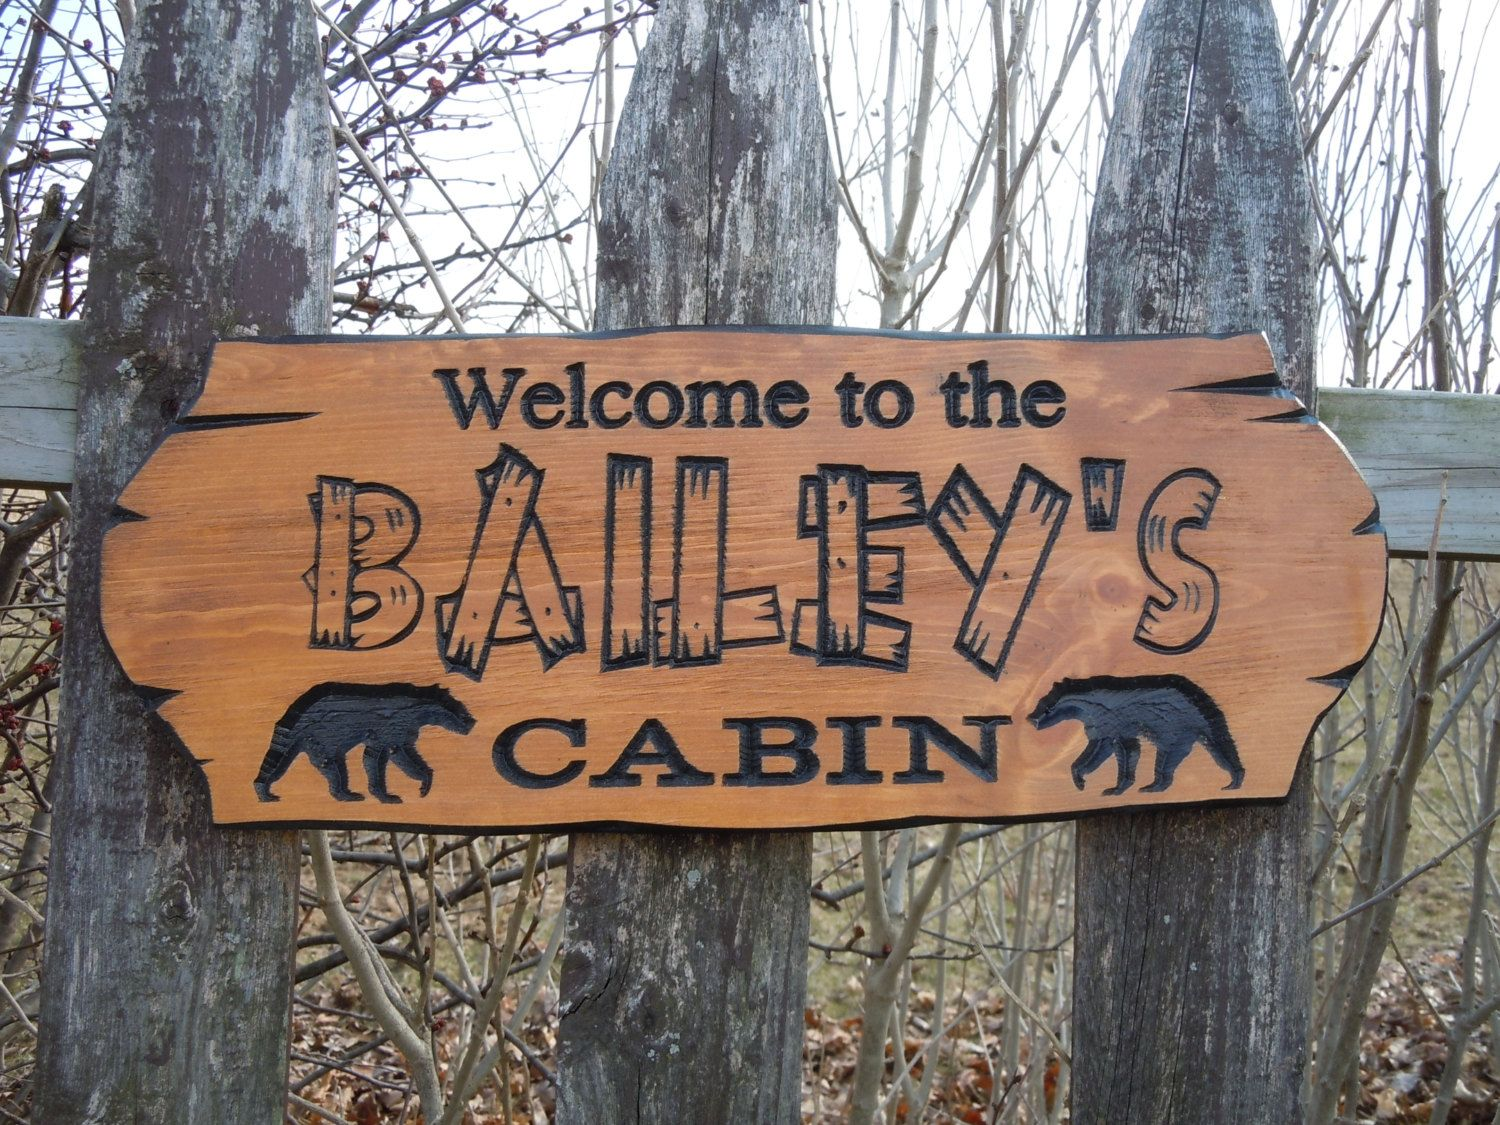 Cabin Sign Last Name Personalized Wooden Carved Rustic. Meningitis Signs. Tumblr Movie Signs. Vergo Signs Of Stroke. Aid Signs Of Stroke. Business Card Signs Of Stroke. Letting Go Signs. Plus Signs Of Stroke. Daisy Signs